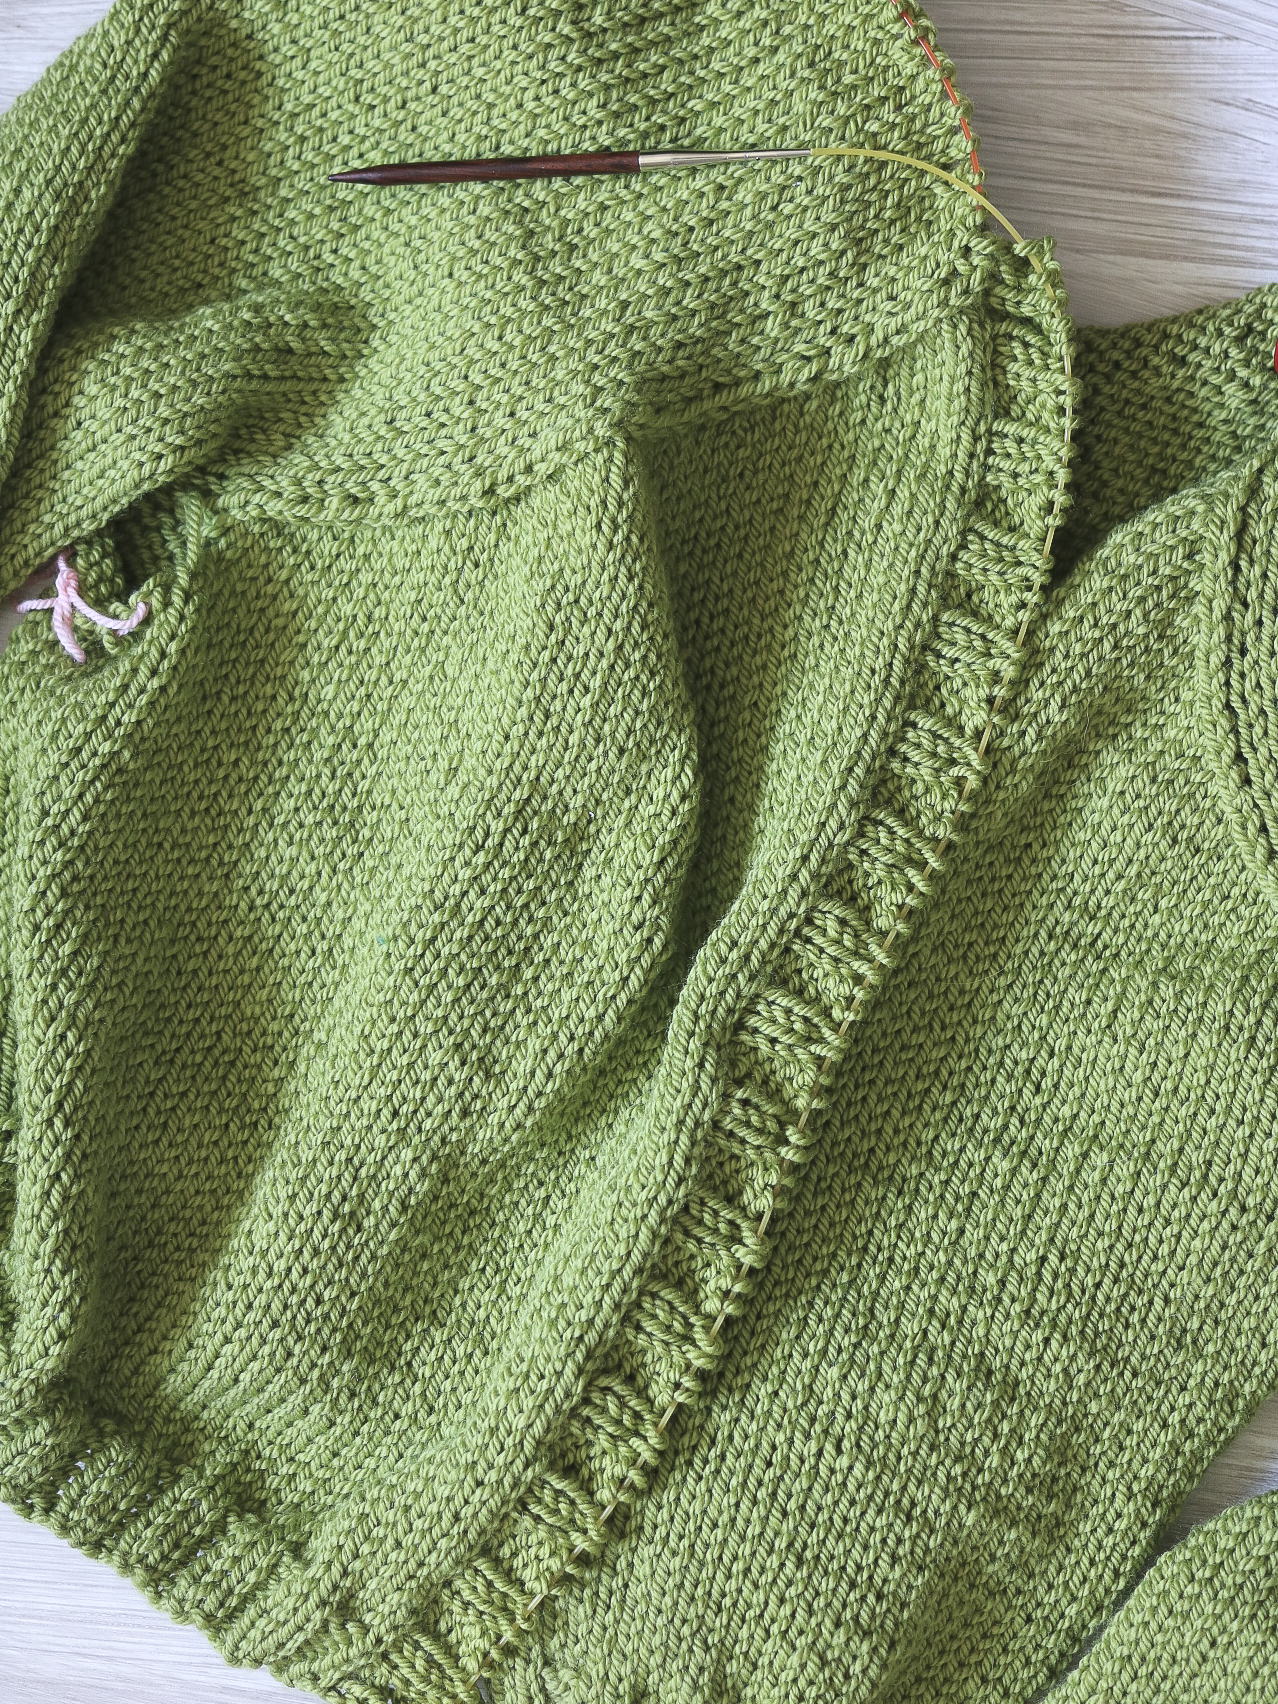 Creating a finished button band on a knit sweater